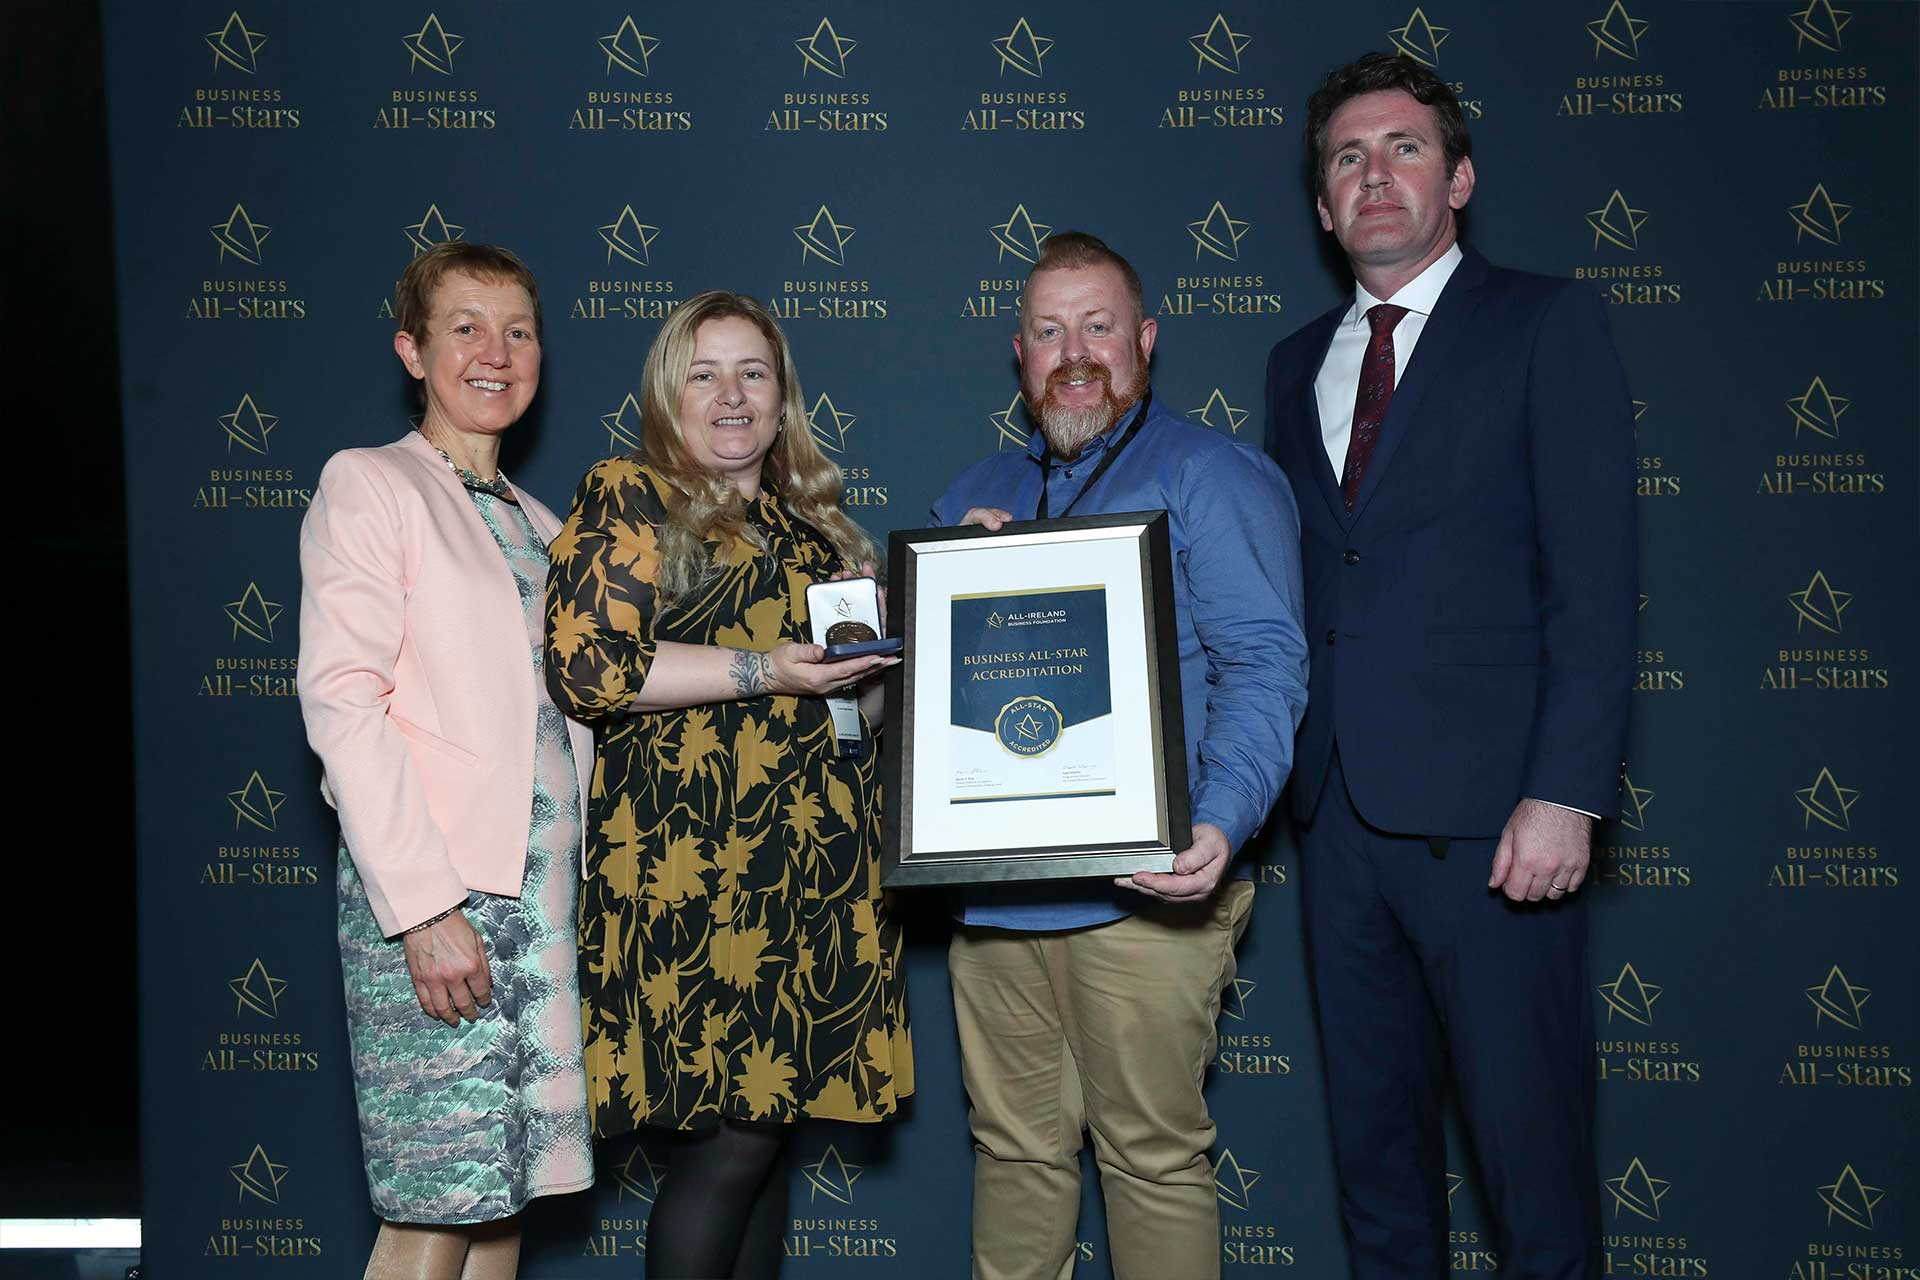 Katie & Anthony Sheehy - Irish Whiskey Auctions receiving Business All-Star Accreditation at Croke Park from Dr Briga Hynes, Kemmy Business School, University of Limerick and Senator Aodhán Ó Ríordáin, Spokesperson on Education and Skills, Gaeilge and the Gaeltacht.